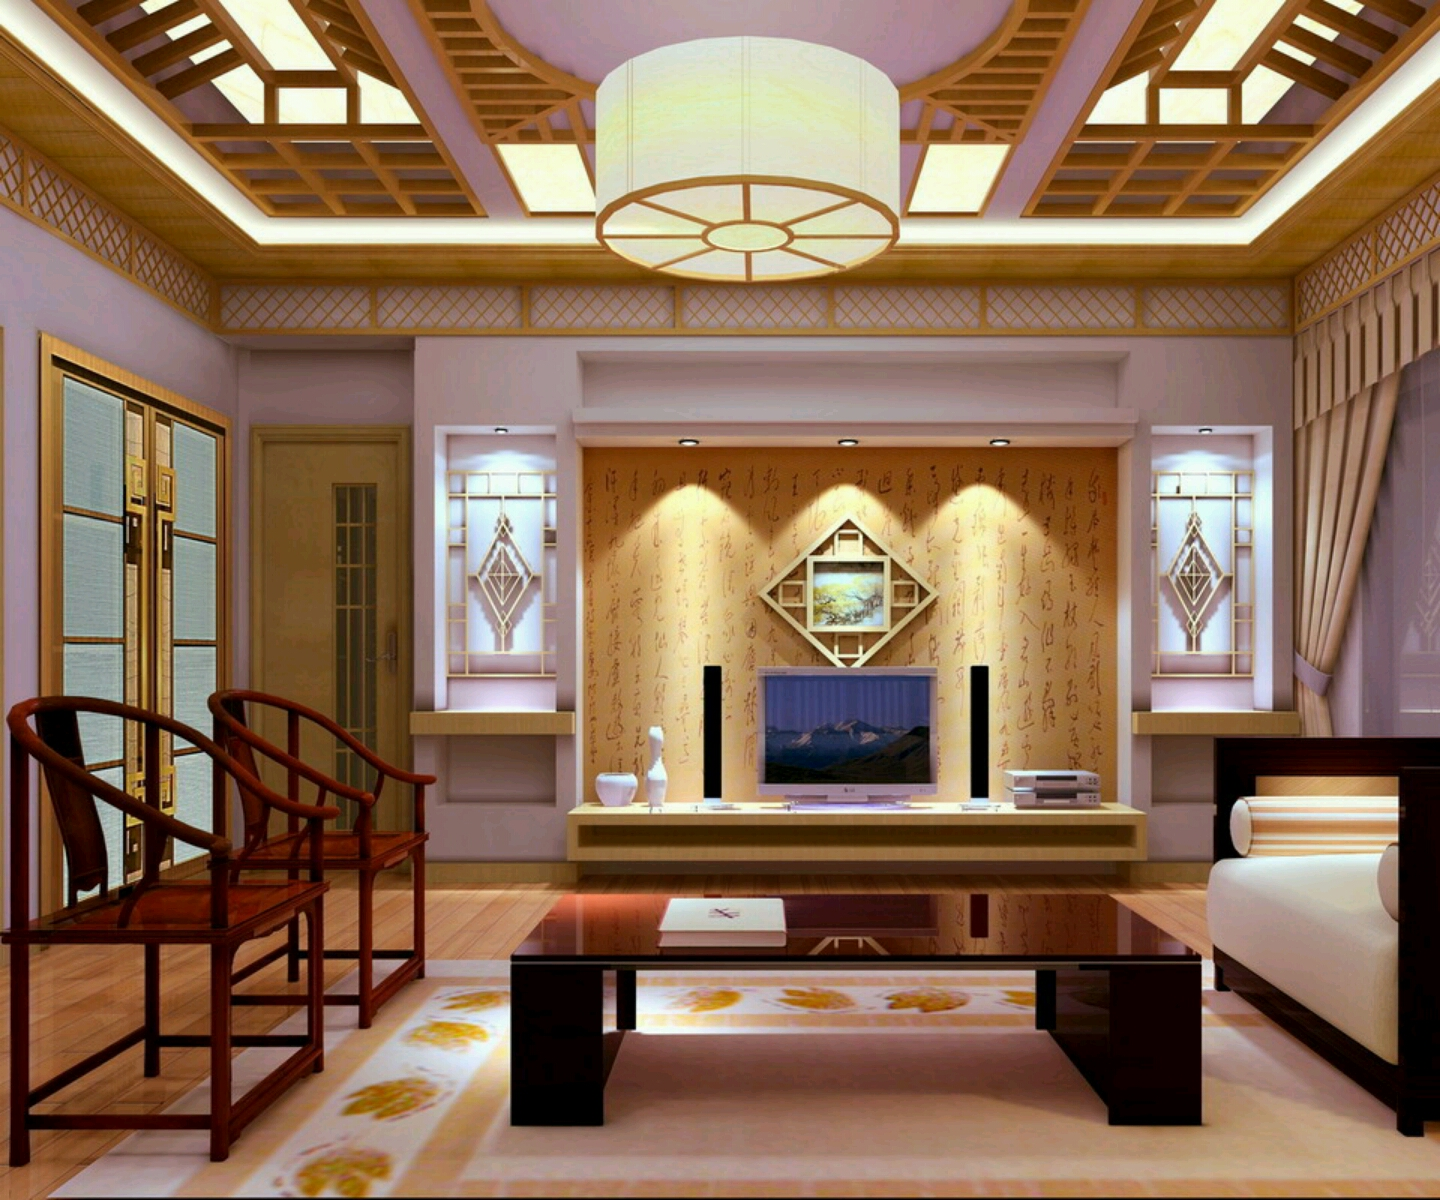 New Home Designs Latest Modern Interior Decoration: New Home Designs Latest.: Homes Interior Designs Studyrooms